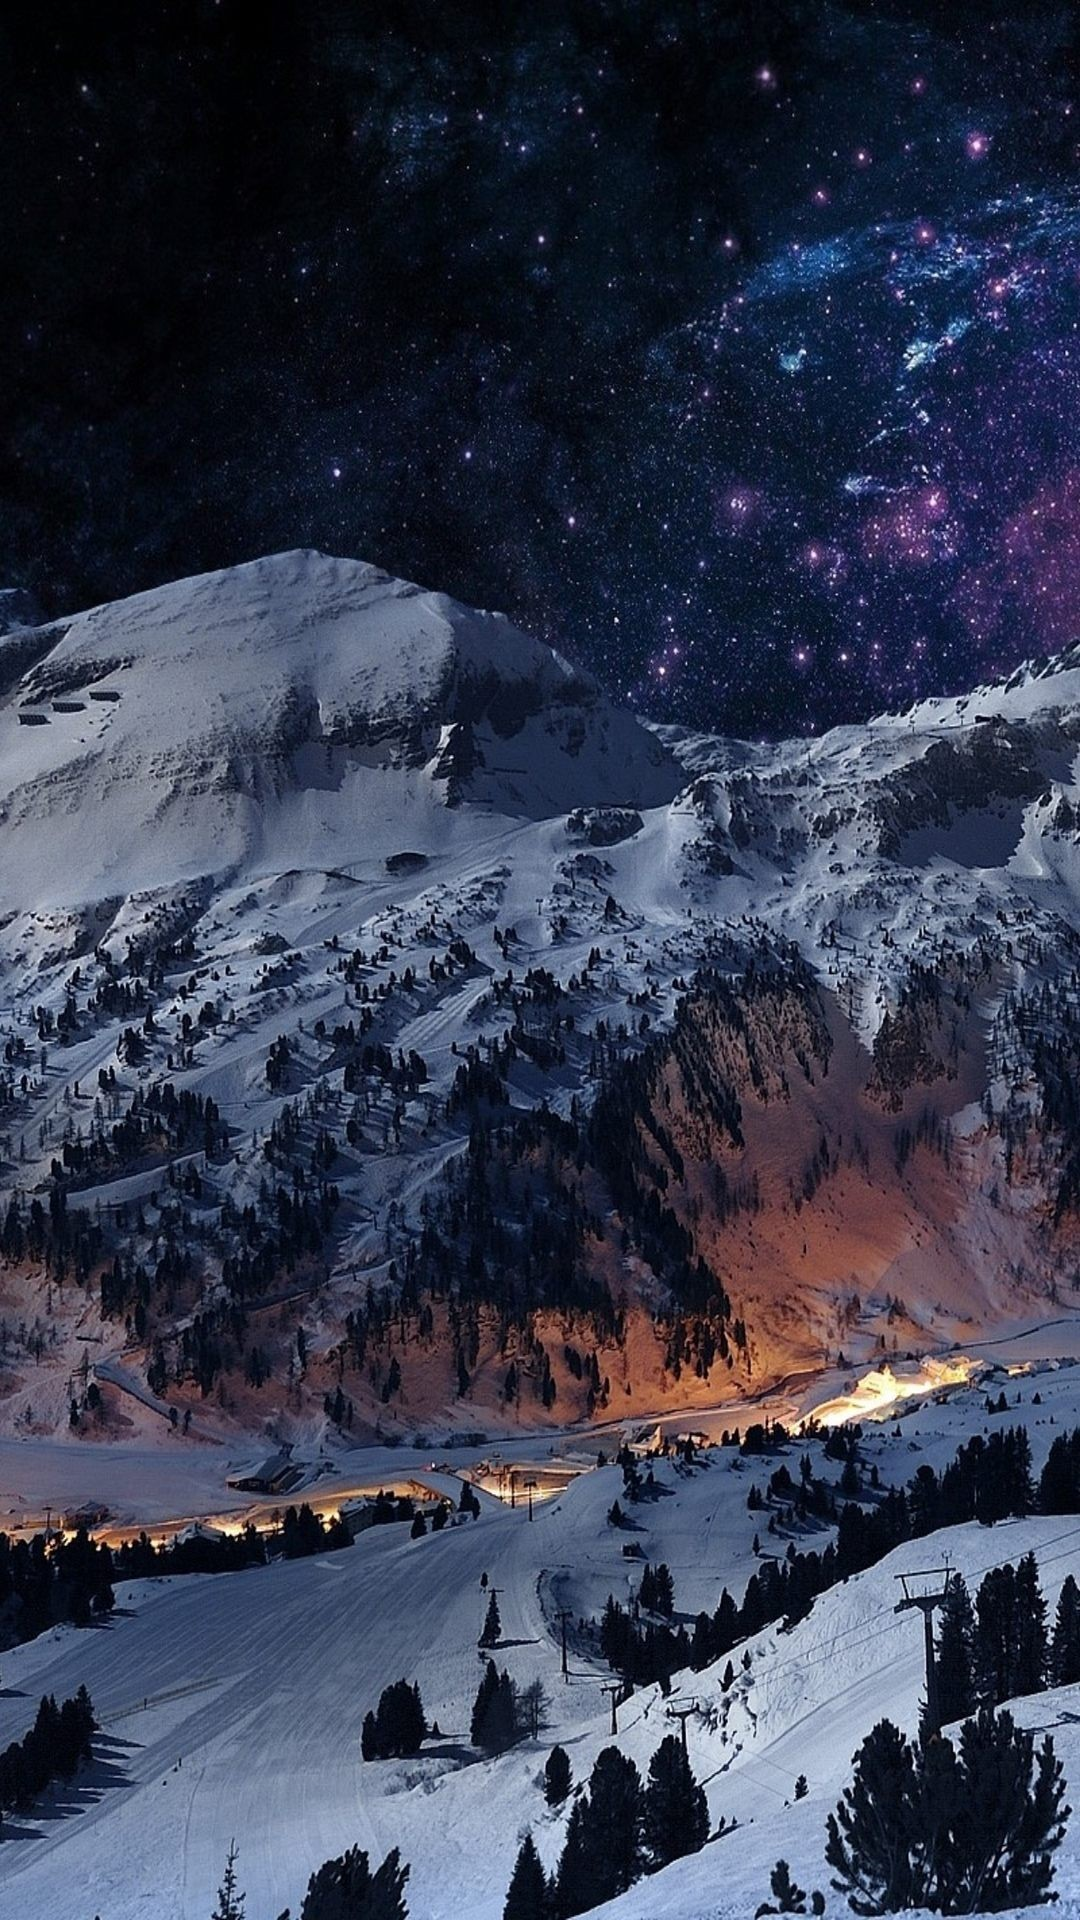 Winter Wallpaper For Iphone 6 Plus – HD Wallpapers Backgrounds of Your .